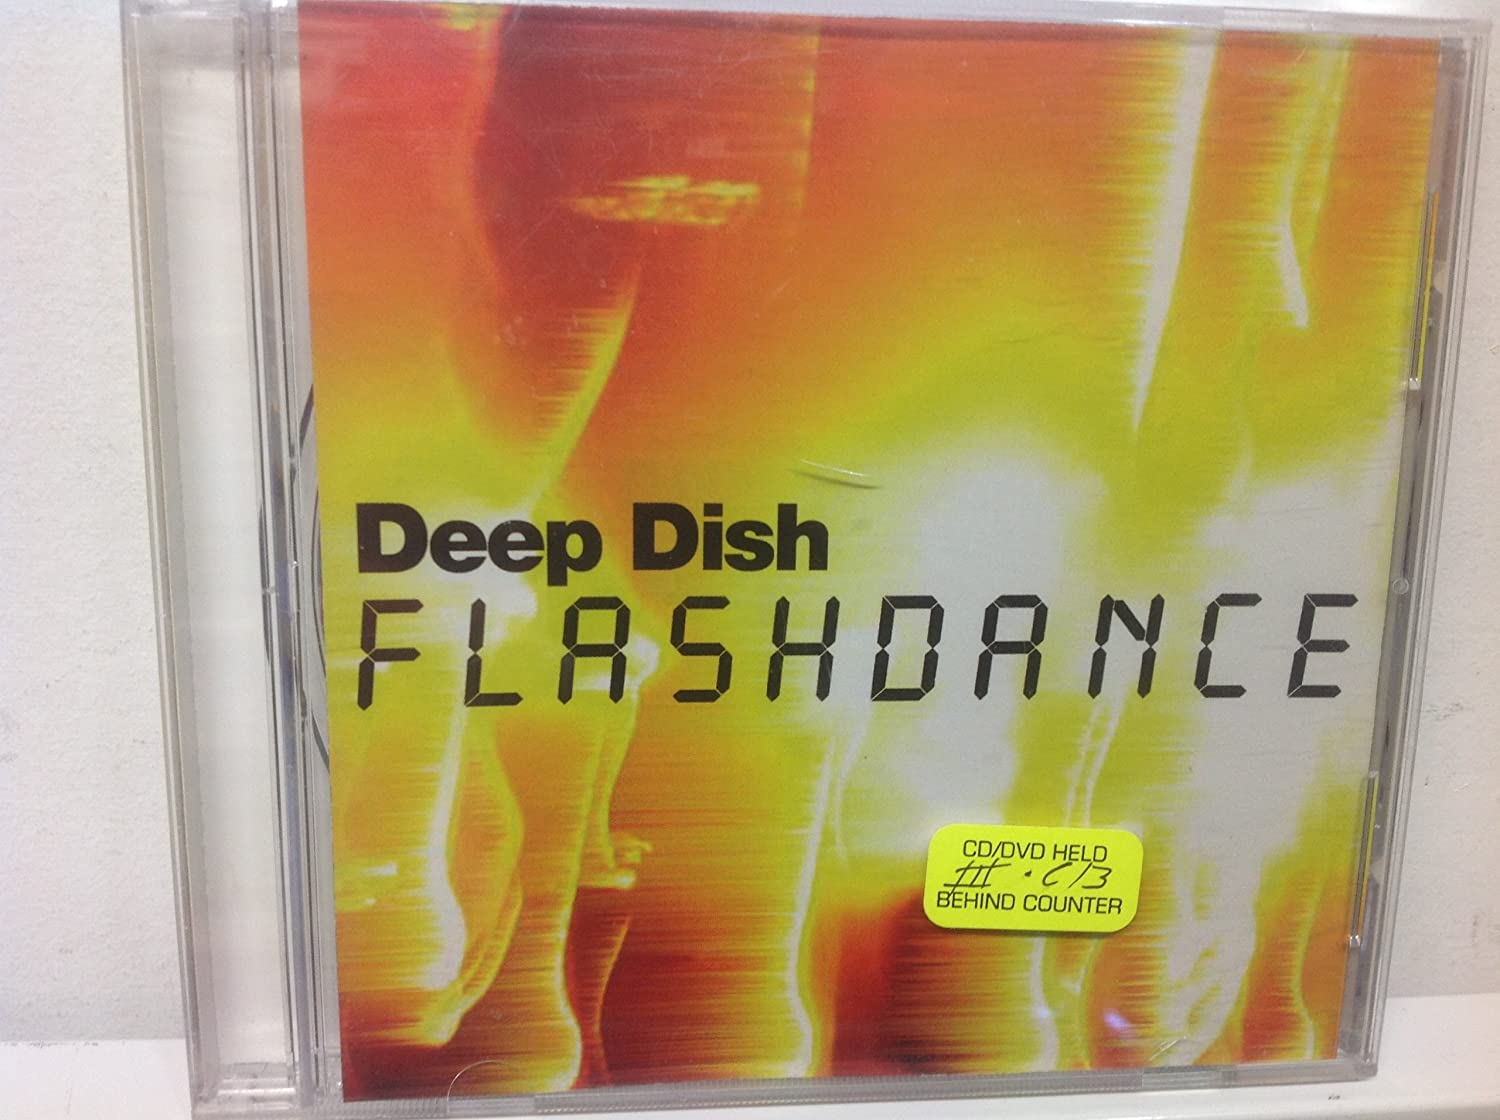 Flash dance house, vol. 2 by various artists on amazon music.